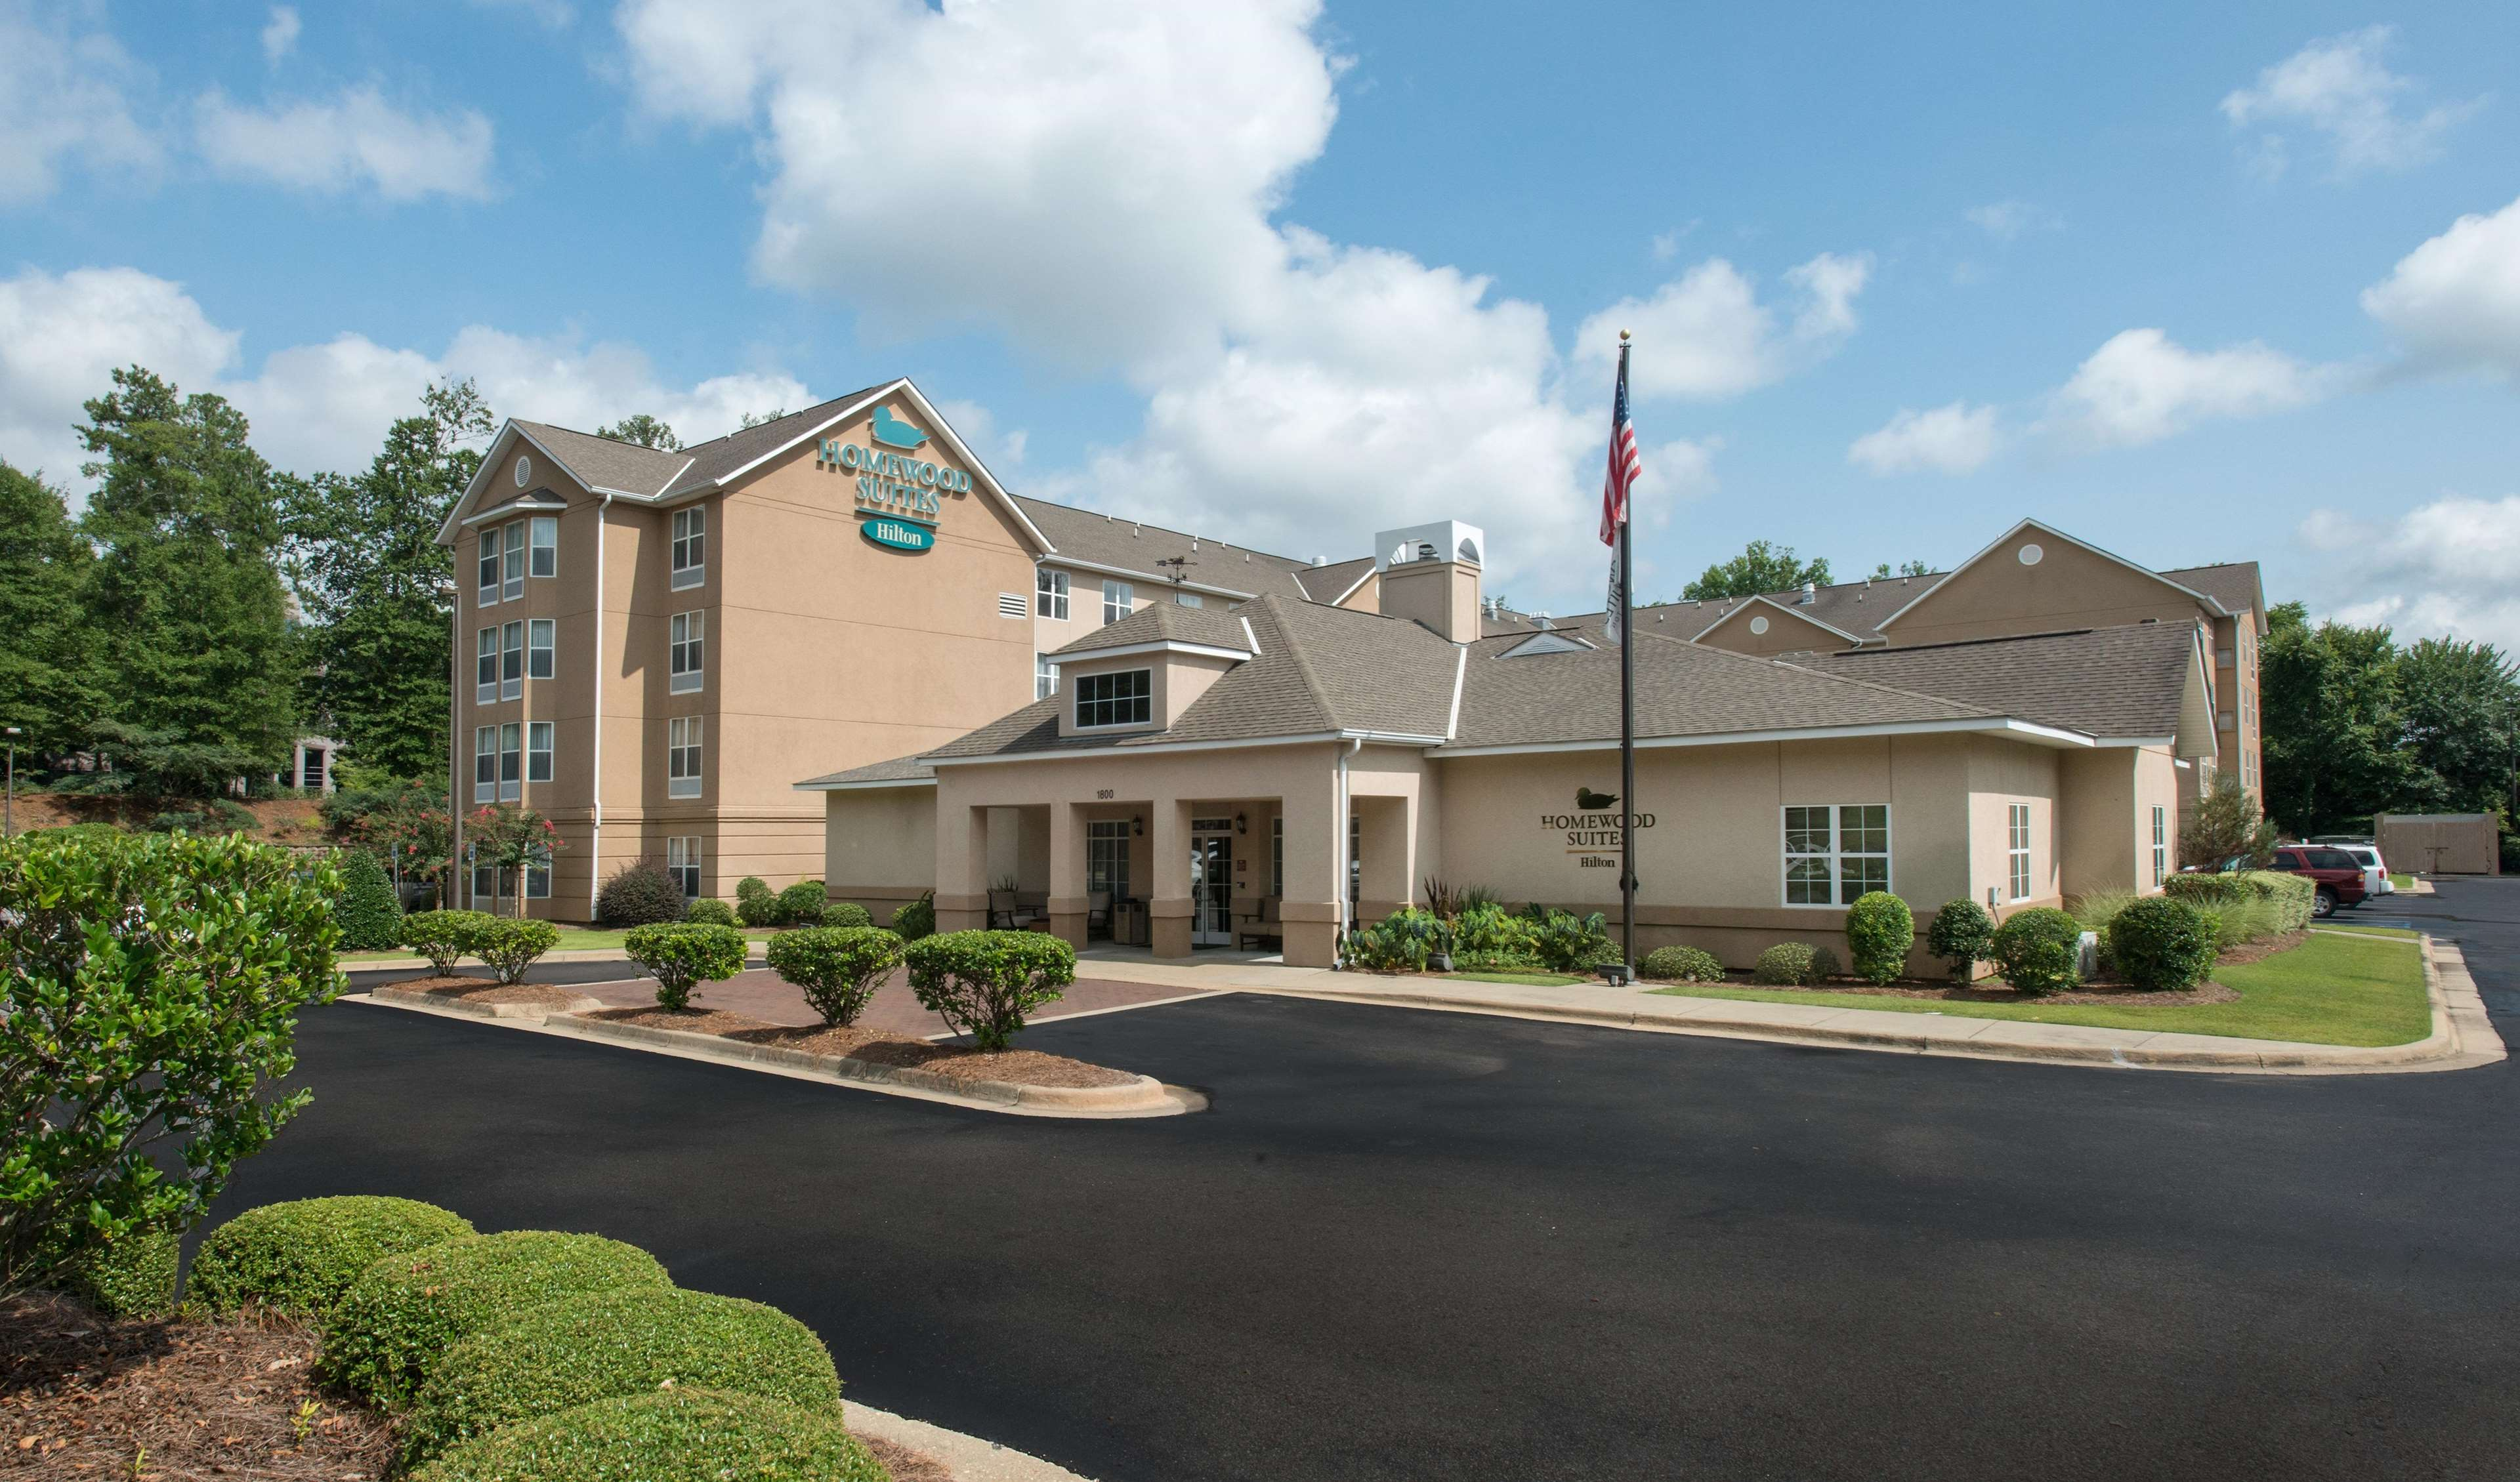 Homewood Suites by Hilton Montgomery image 1